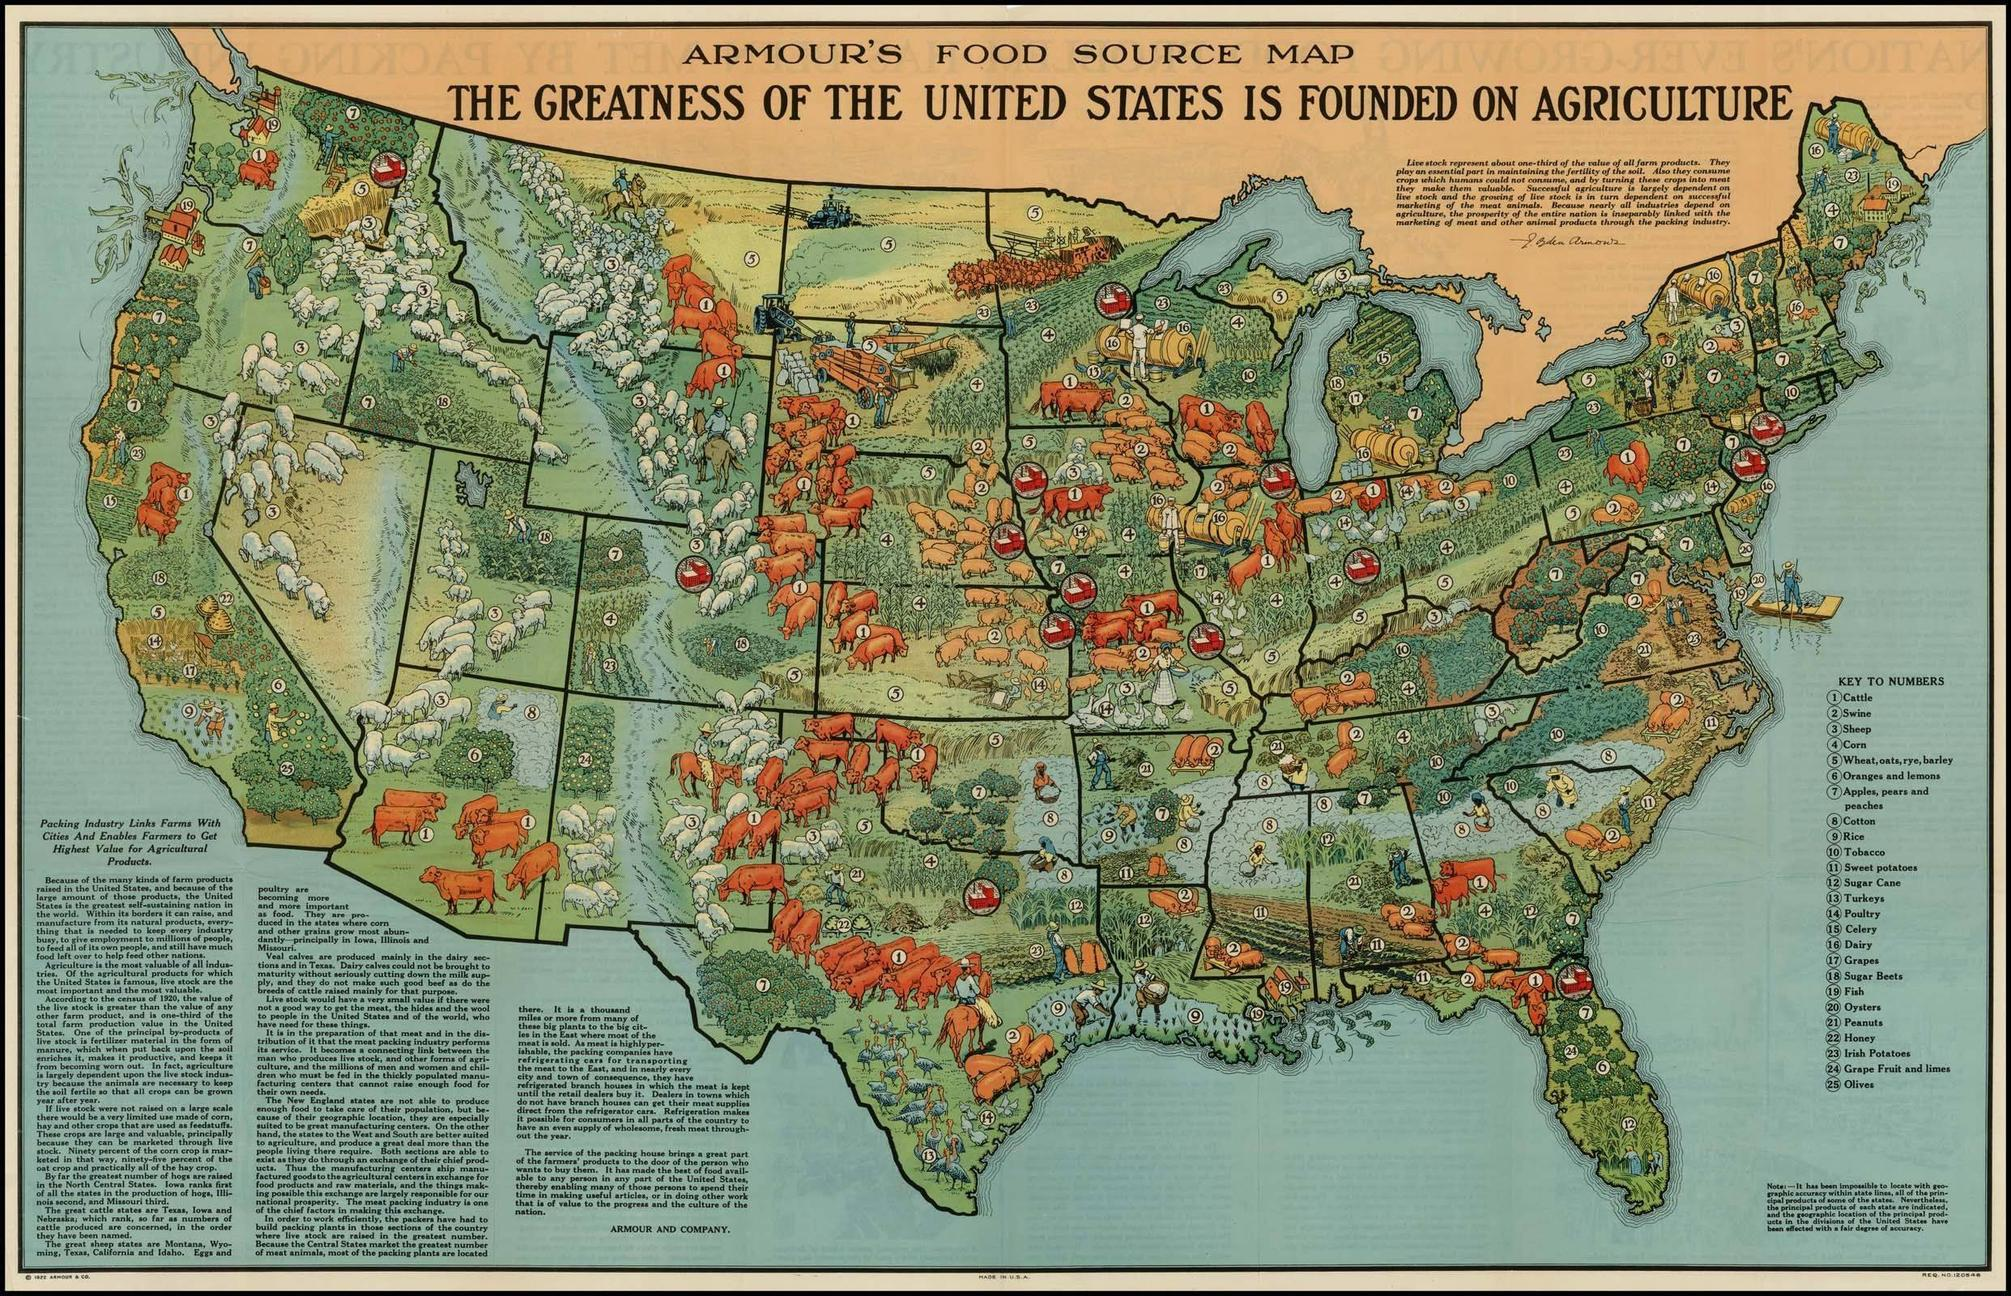 40 maps that explain food in America   Vox com American agriculture in 1922